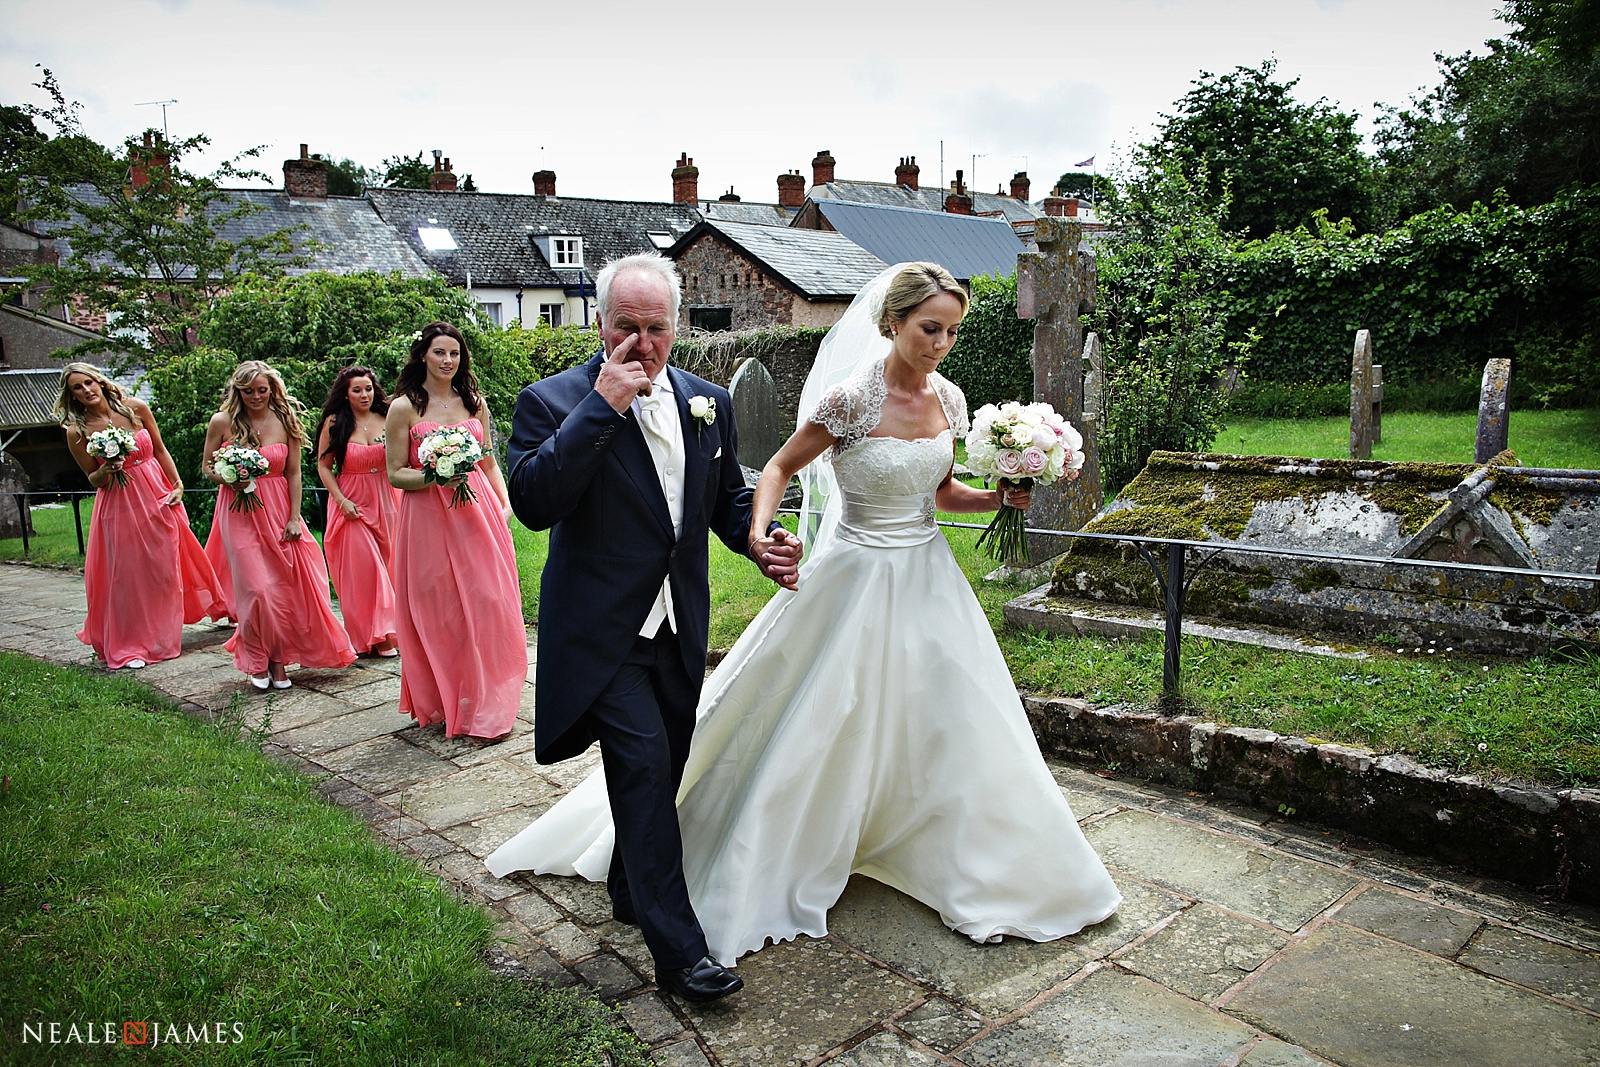 A bride and father walking to the wedding ceremony